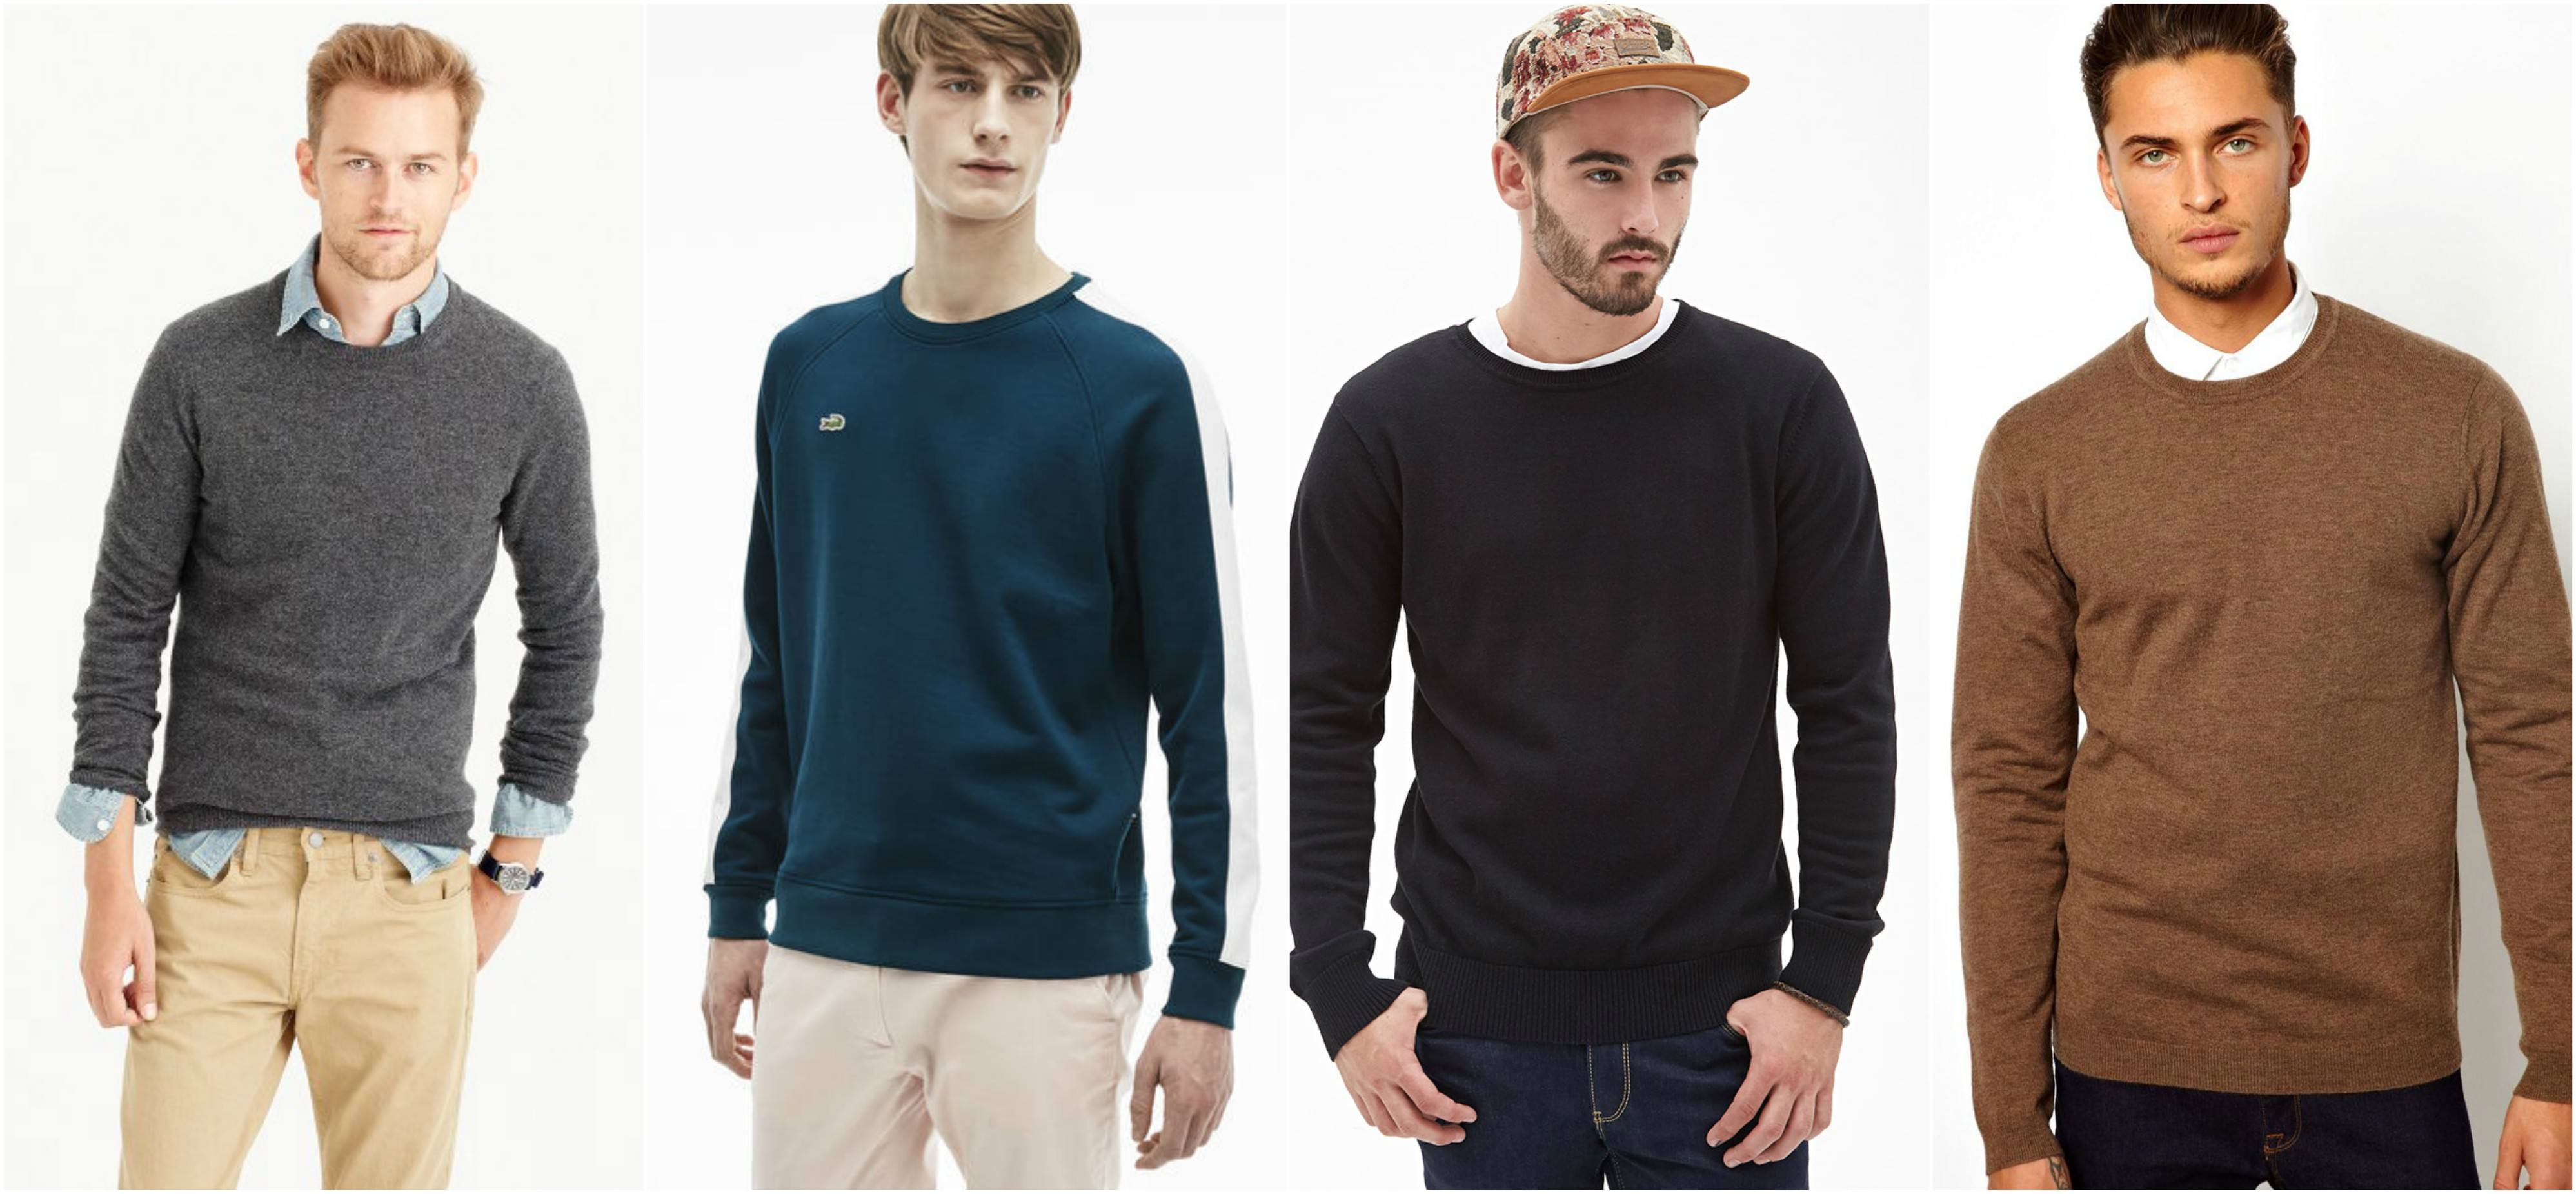 f87a914f6474 Sweater outfits for men – 17 Ways to Wear Sweaters Fashionably